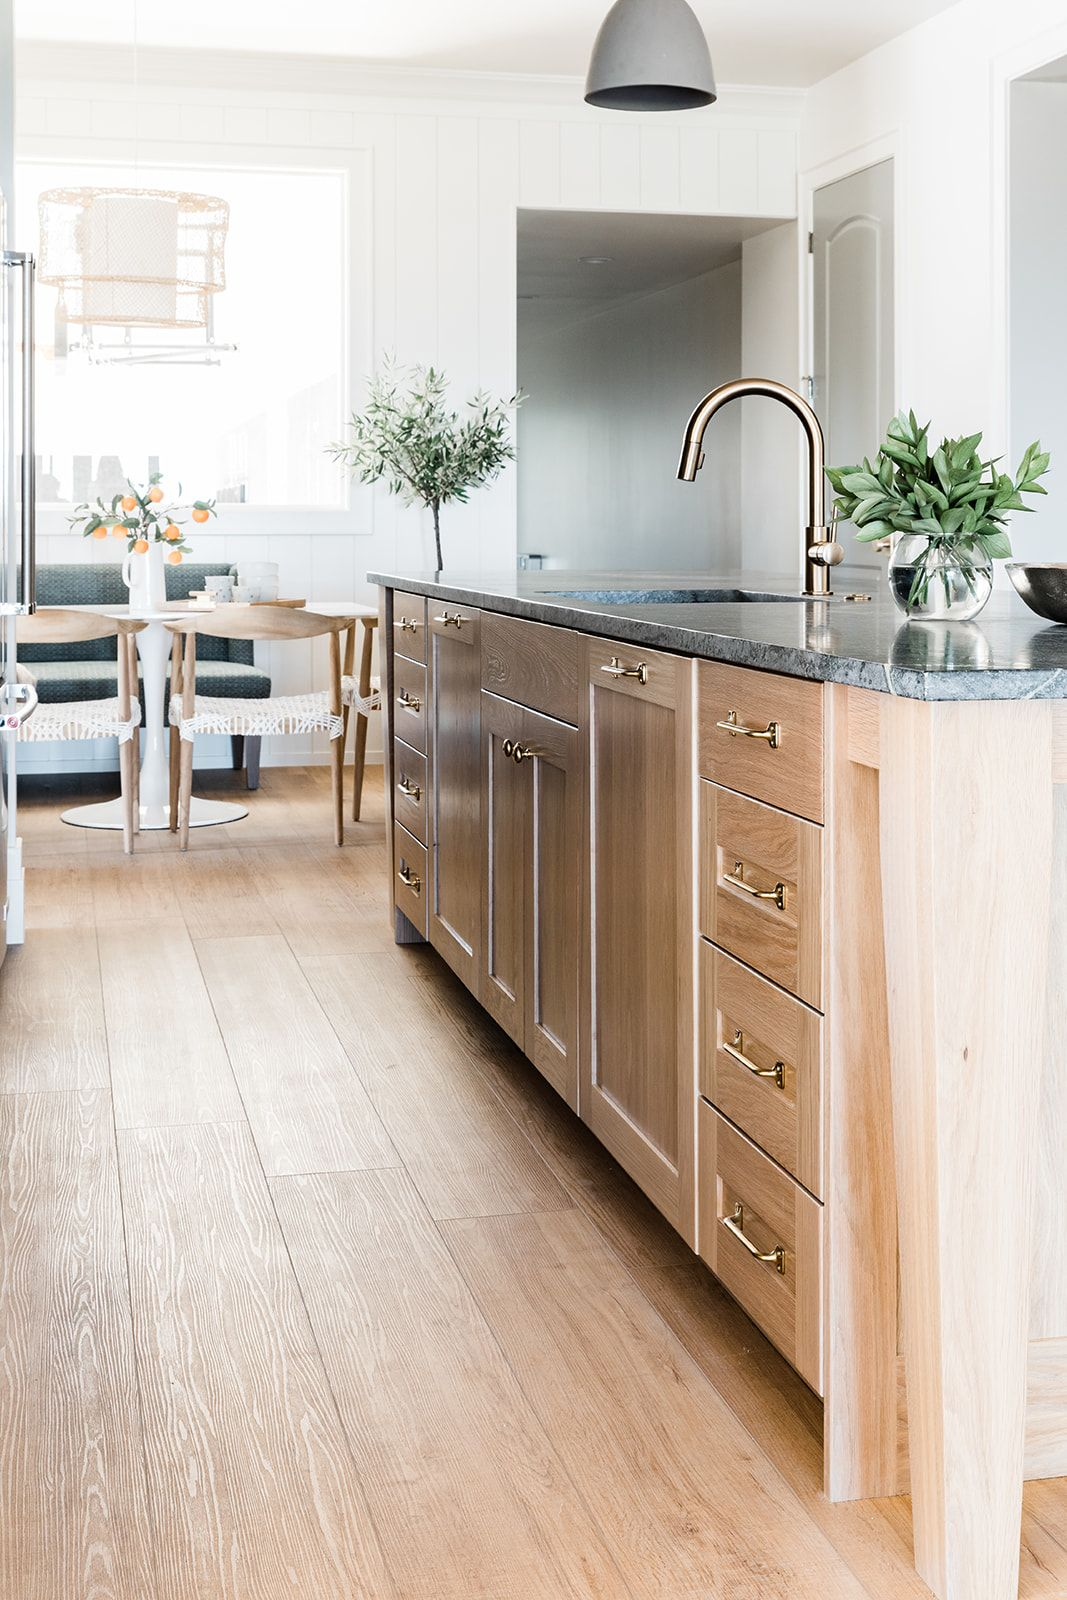 Sunrise Drive White Gold Design Soapstone Countertop White Oak Island Island With Legs Interior Design